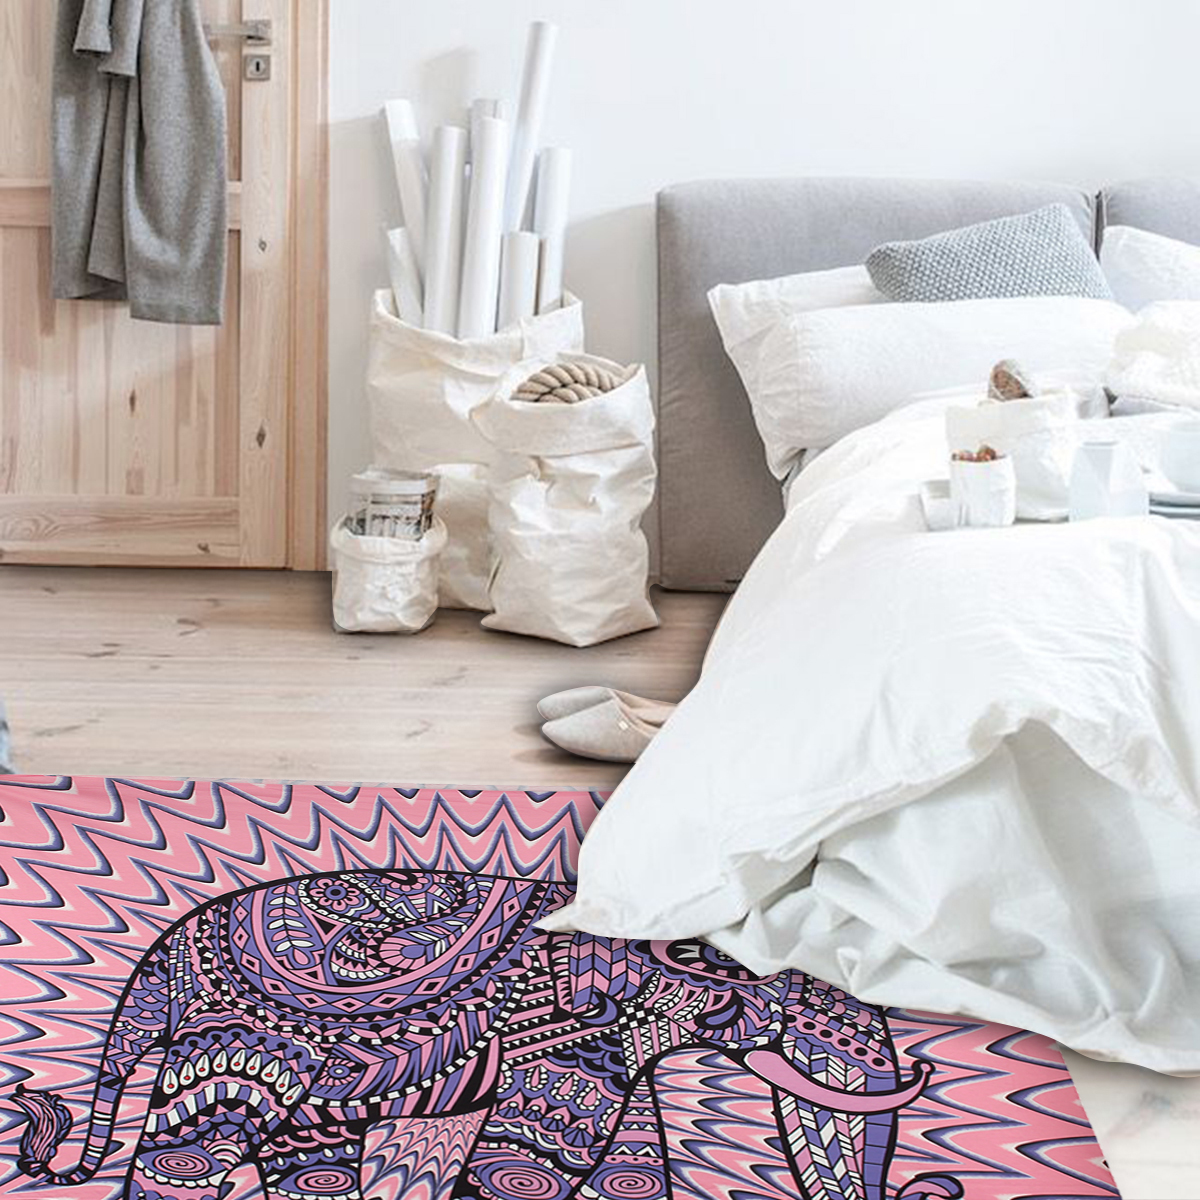 Elephant Mandala Tapestry Throw Towel Hippie Tapestry Floral Printed Home Decor Wall Tapestries Bedspread 210*150CM 19